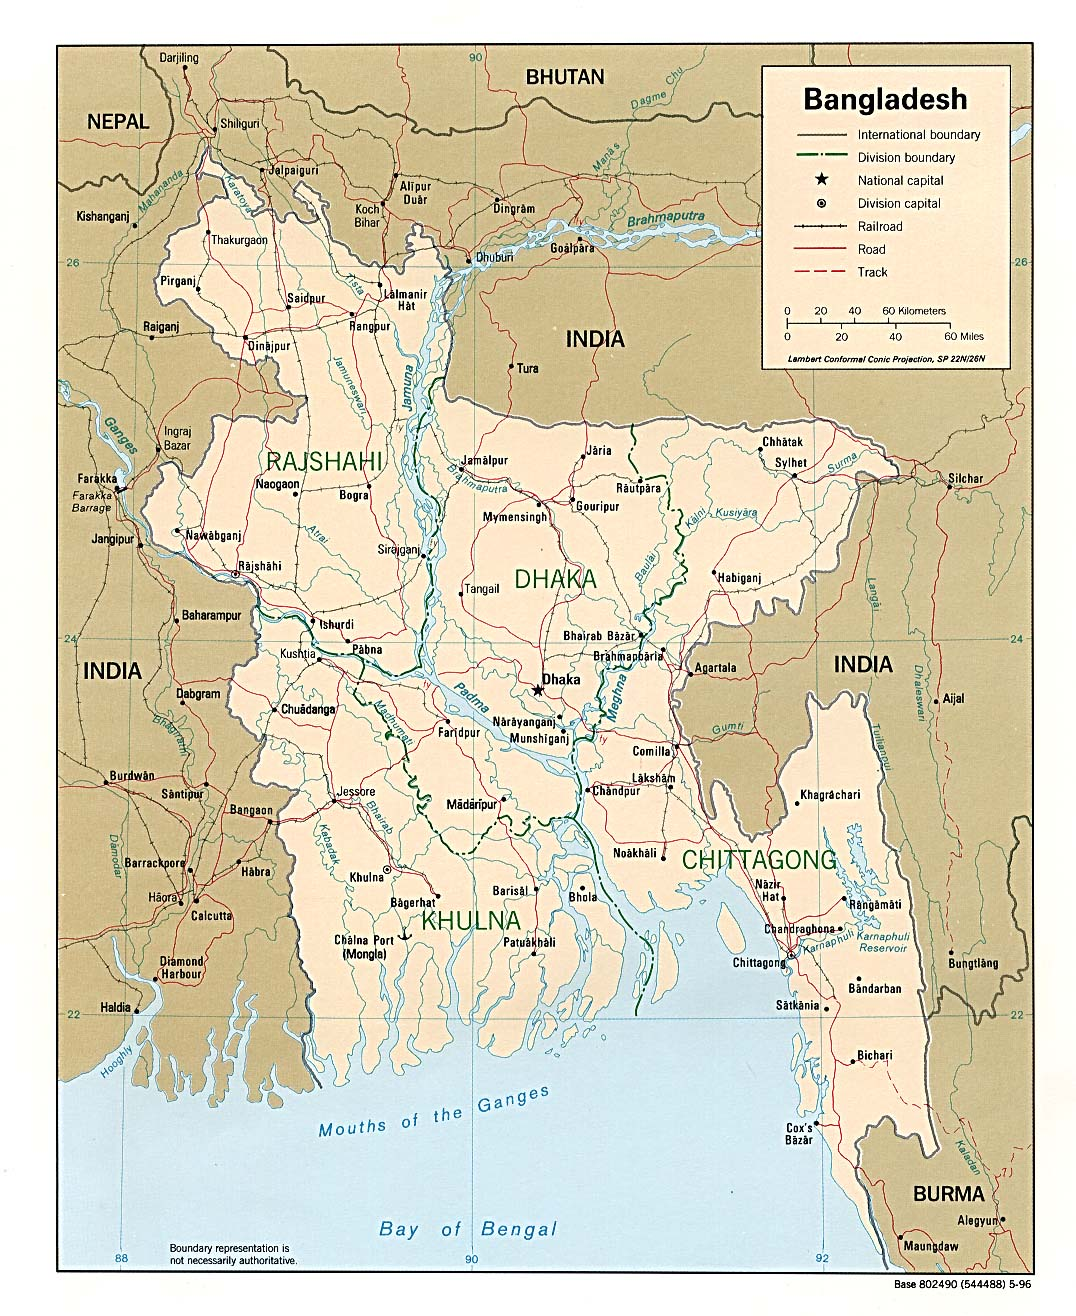 Wps port of mongla satellite map country list bangladesh port of mongla satellite map gumiabroncs Choice Image